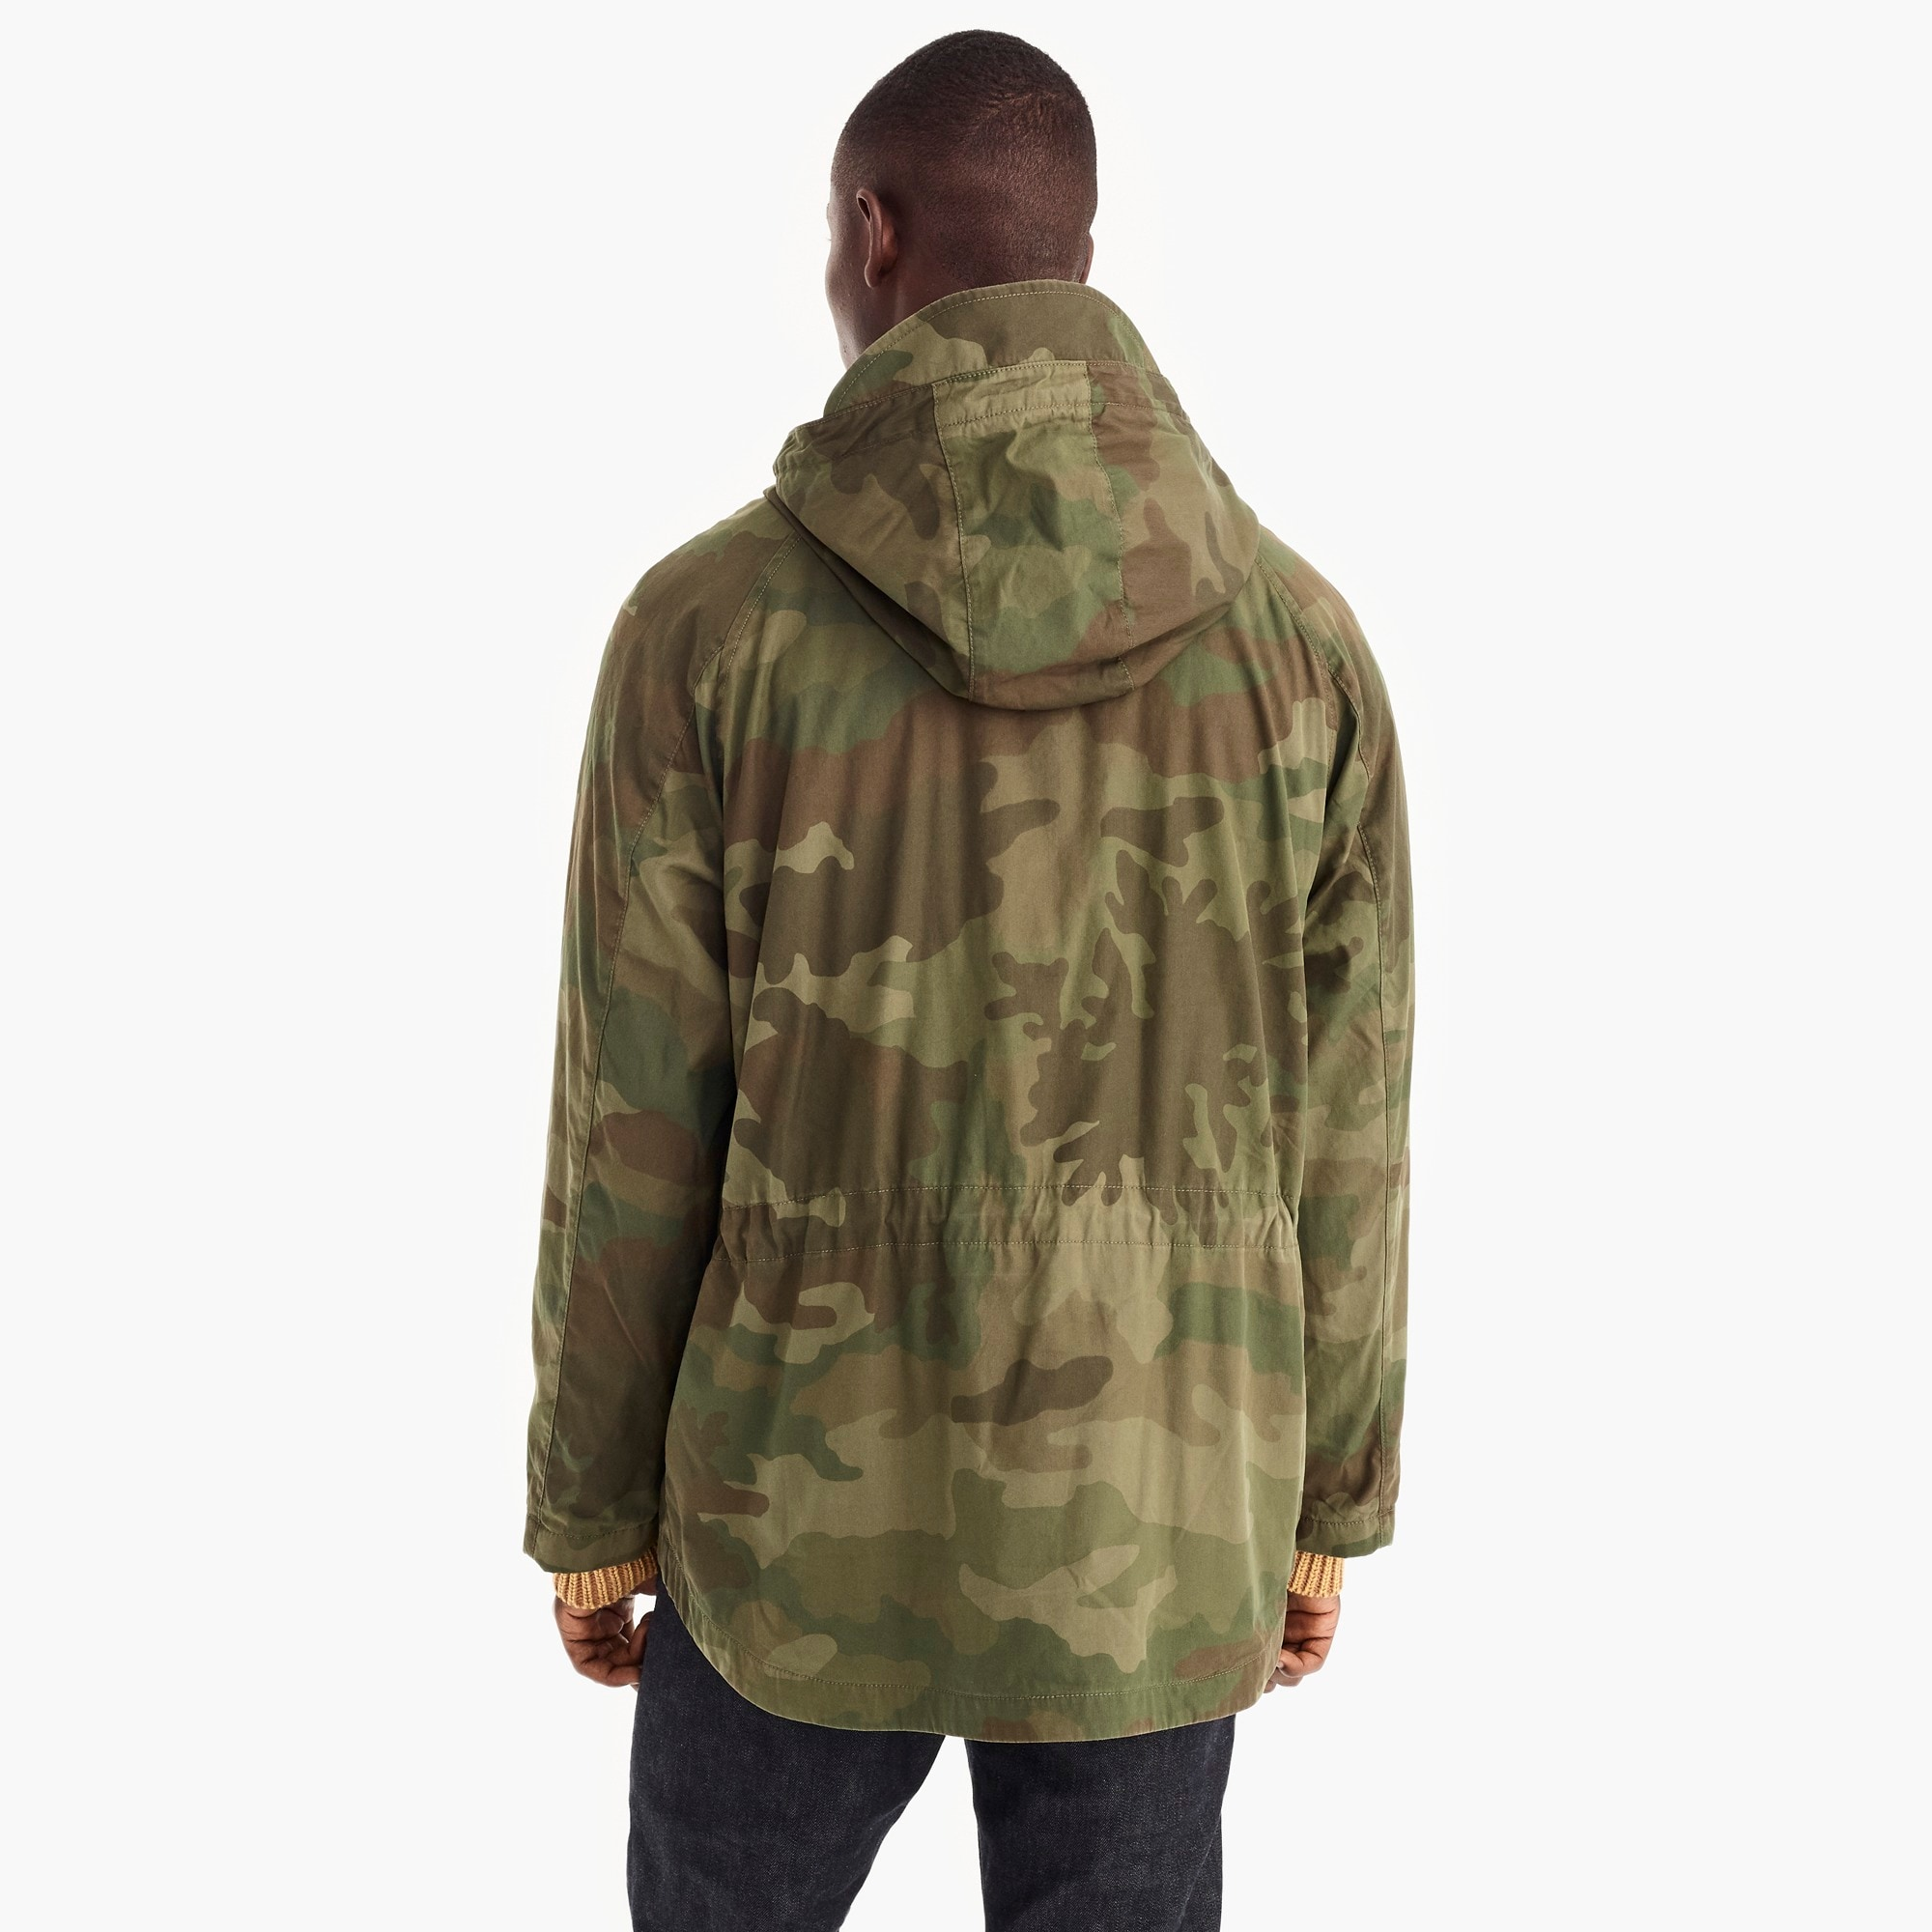 Cotton-nylon hooded jacket in camo